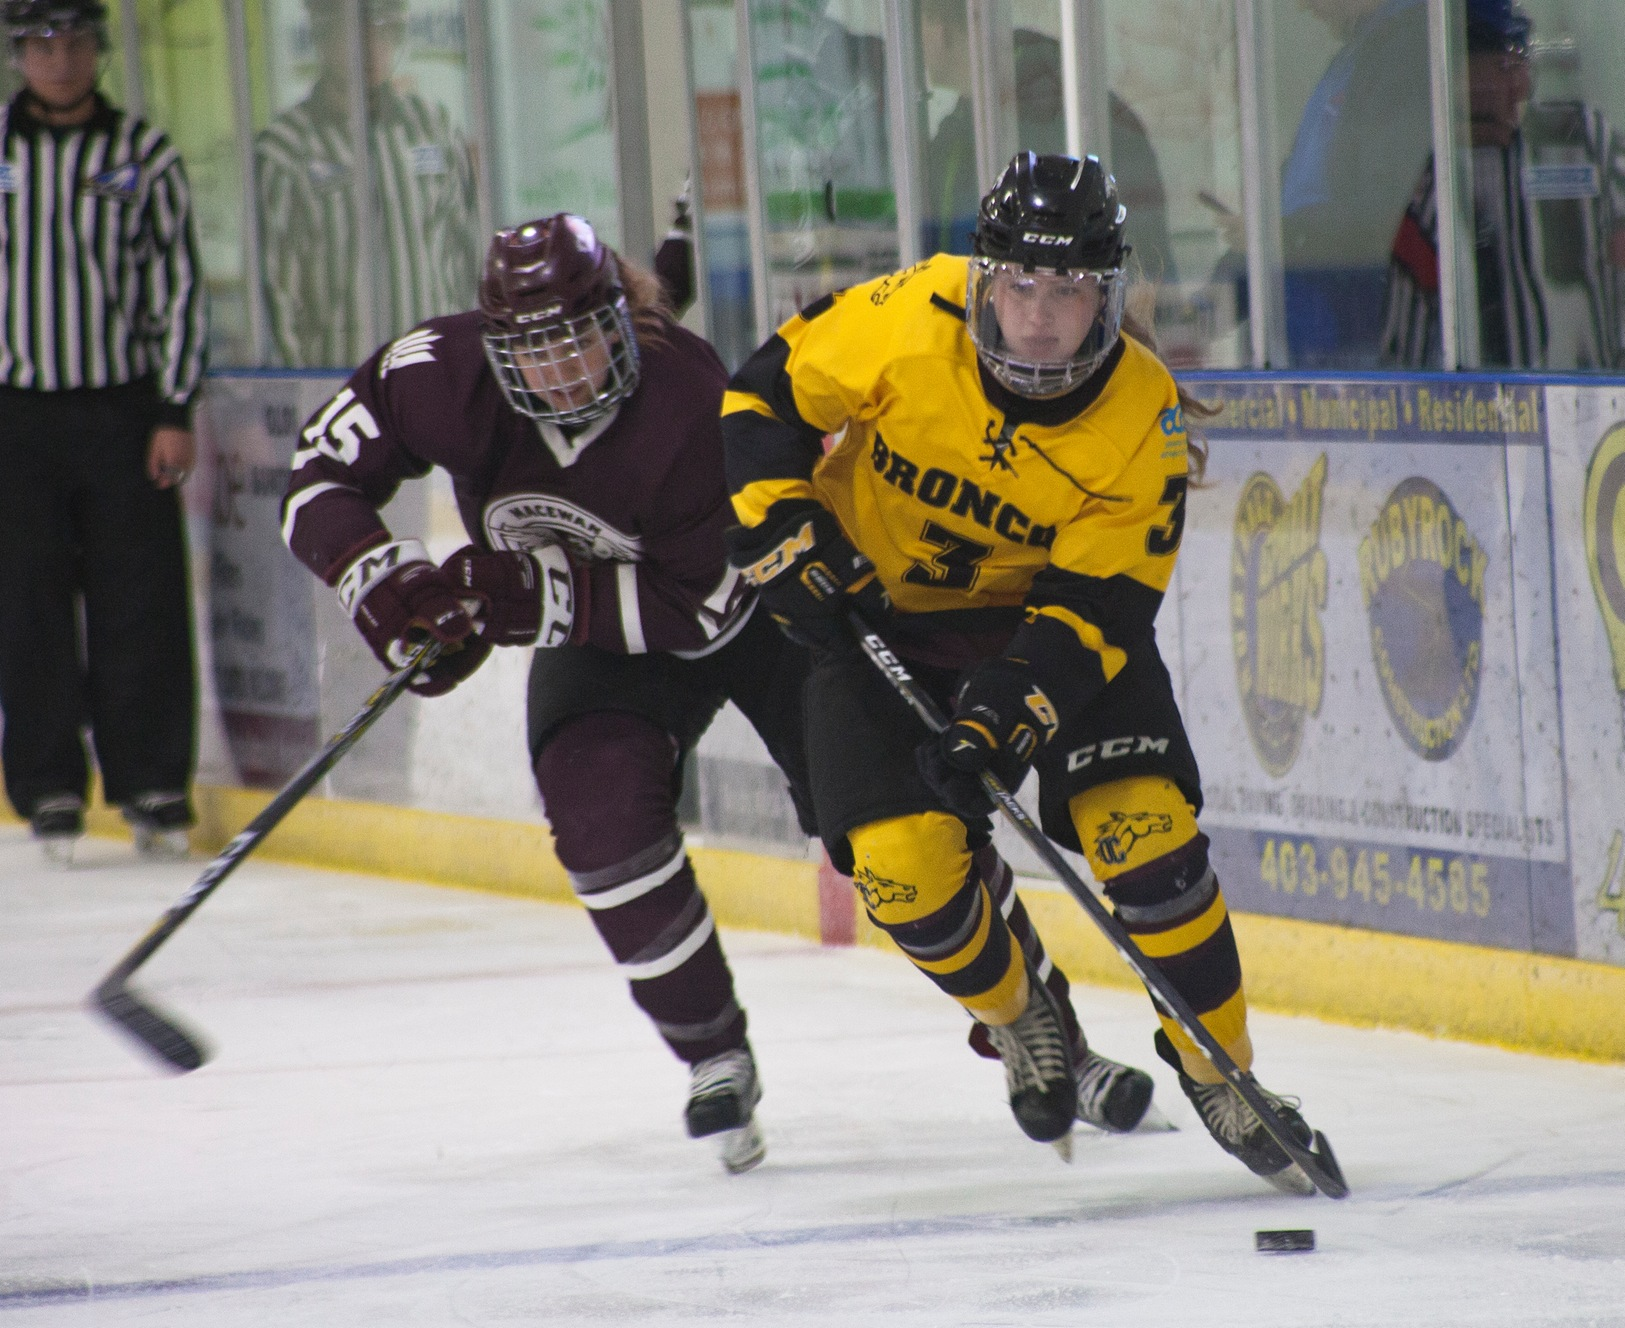 Broncos run into hot Ooks team on Thursday night